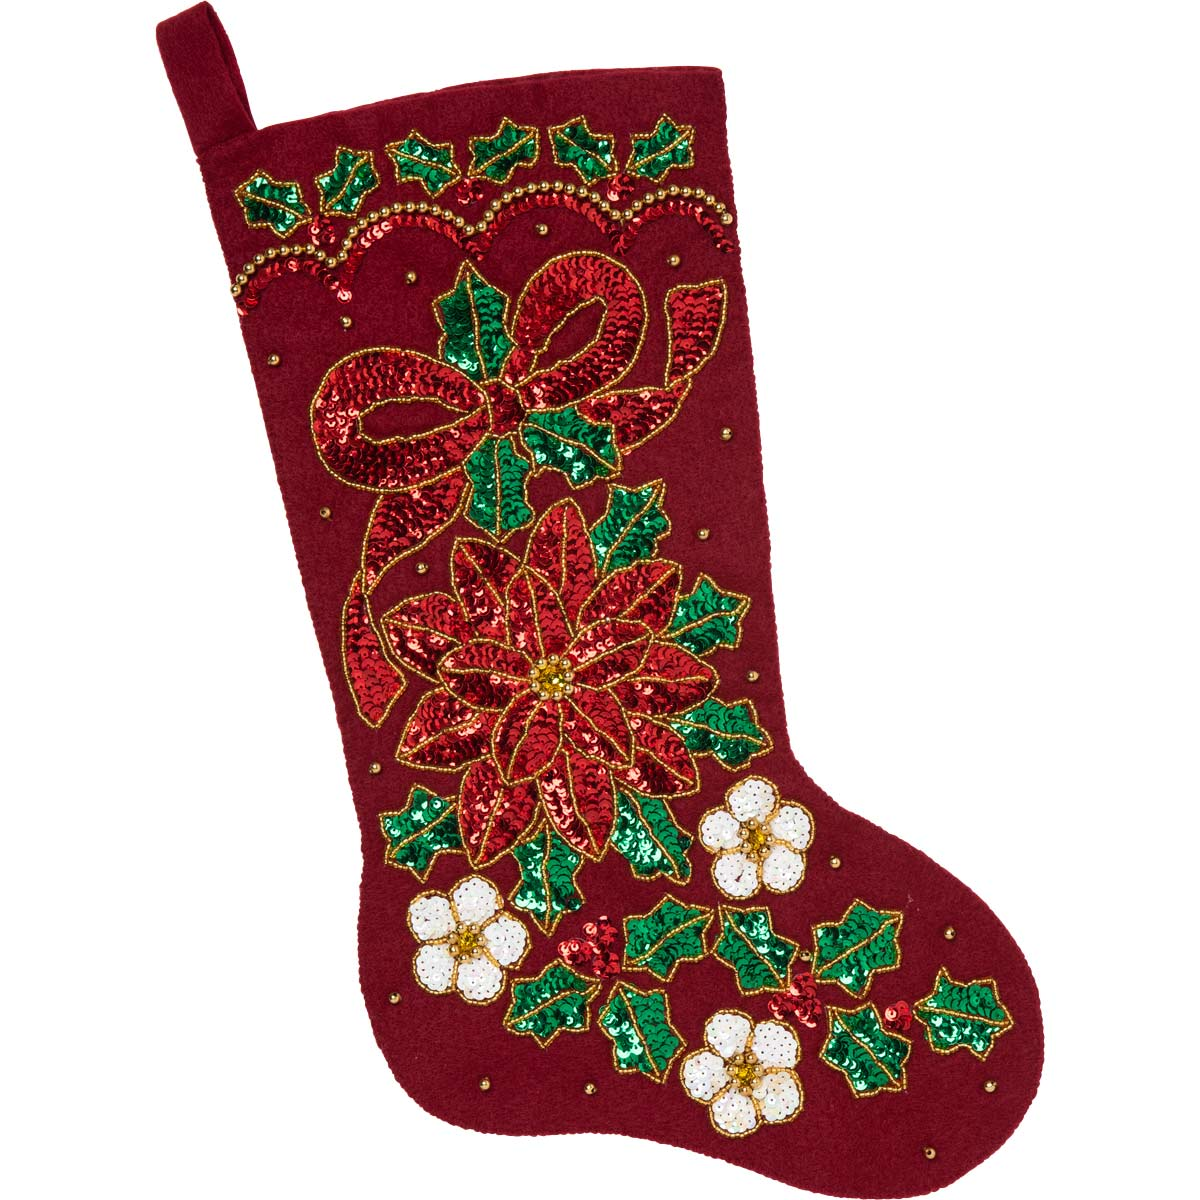 Bucilla ® Seasonal - Felt - Stocking Kits - Glitzy Poinsettia - 89069E